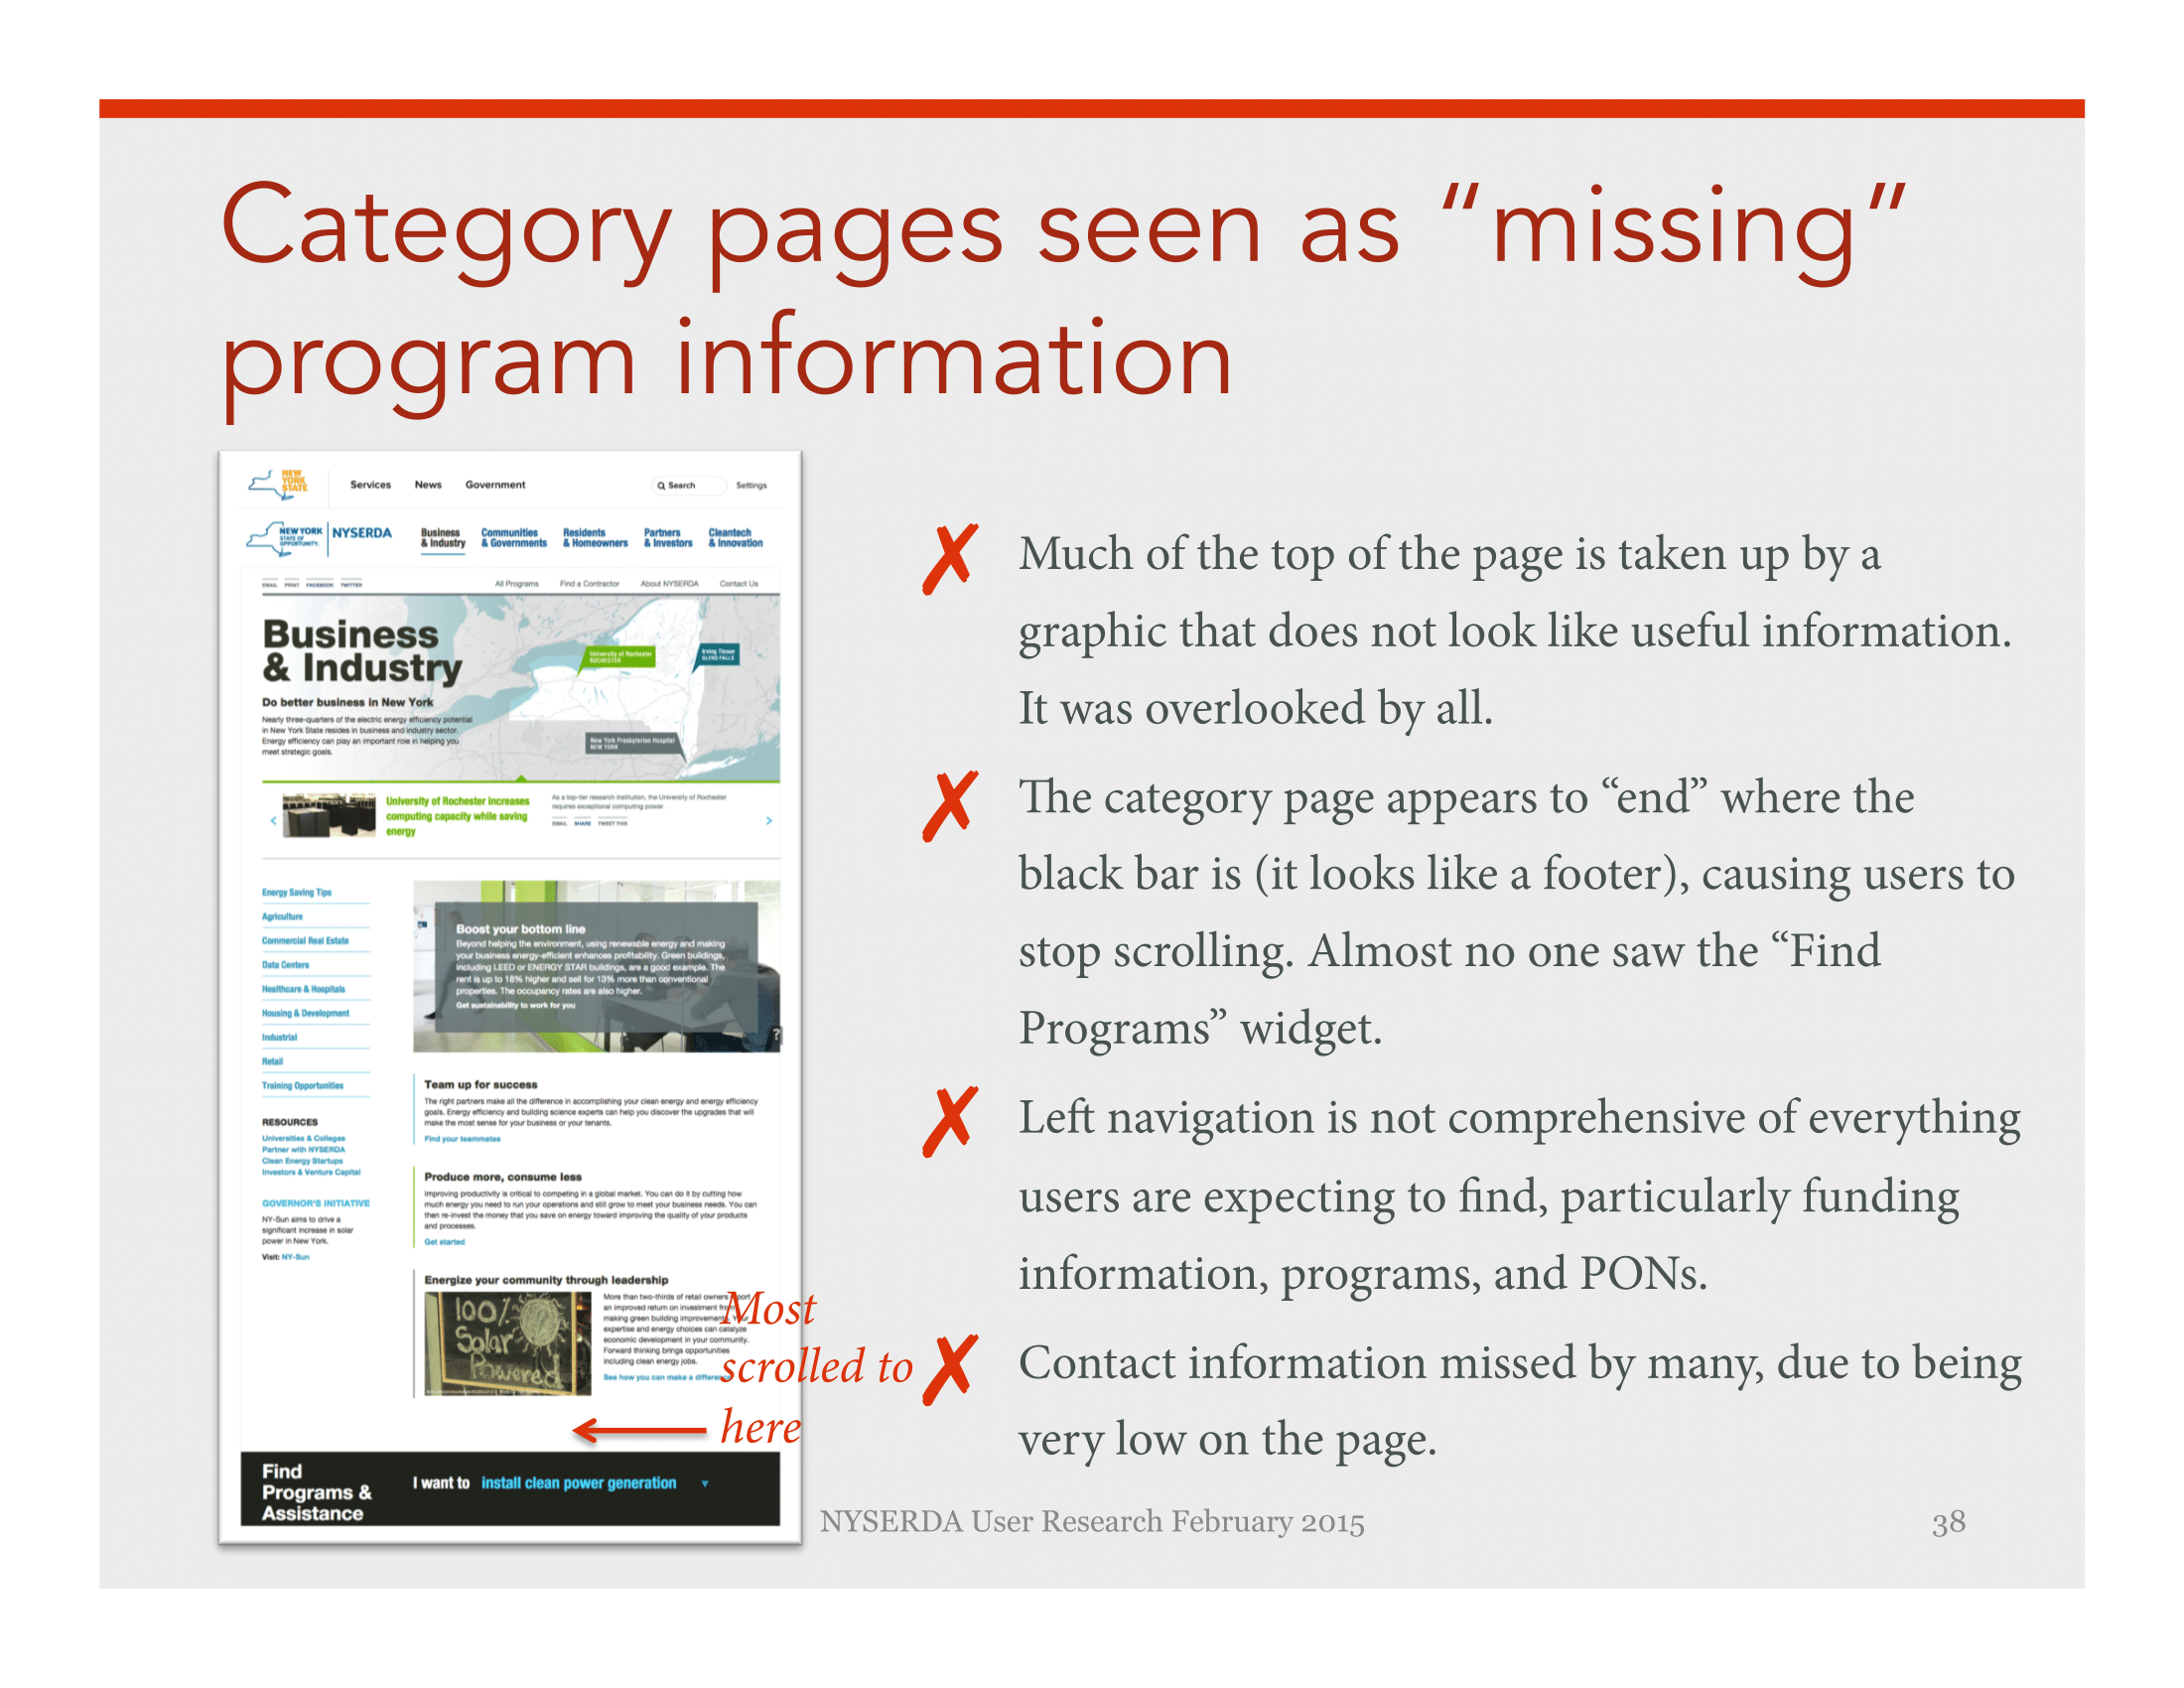 NYSERDA_Usability_Findings_Feb2015_PRESENTED 38-1.png